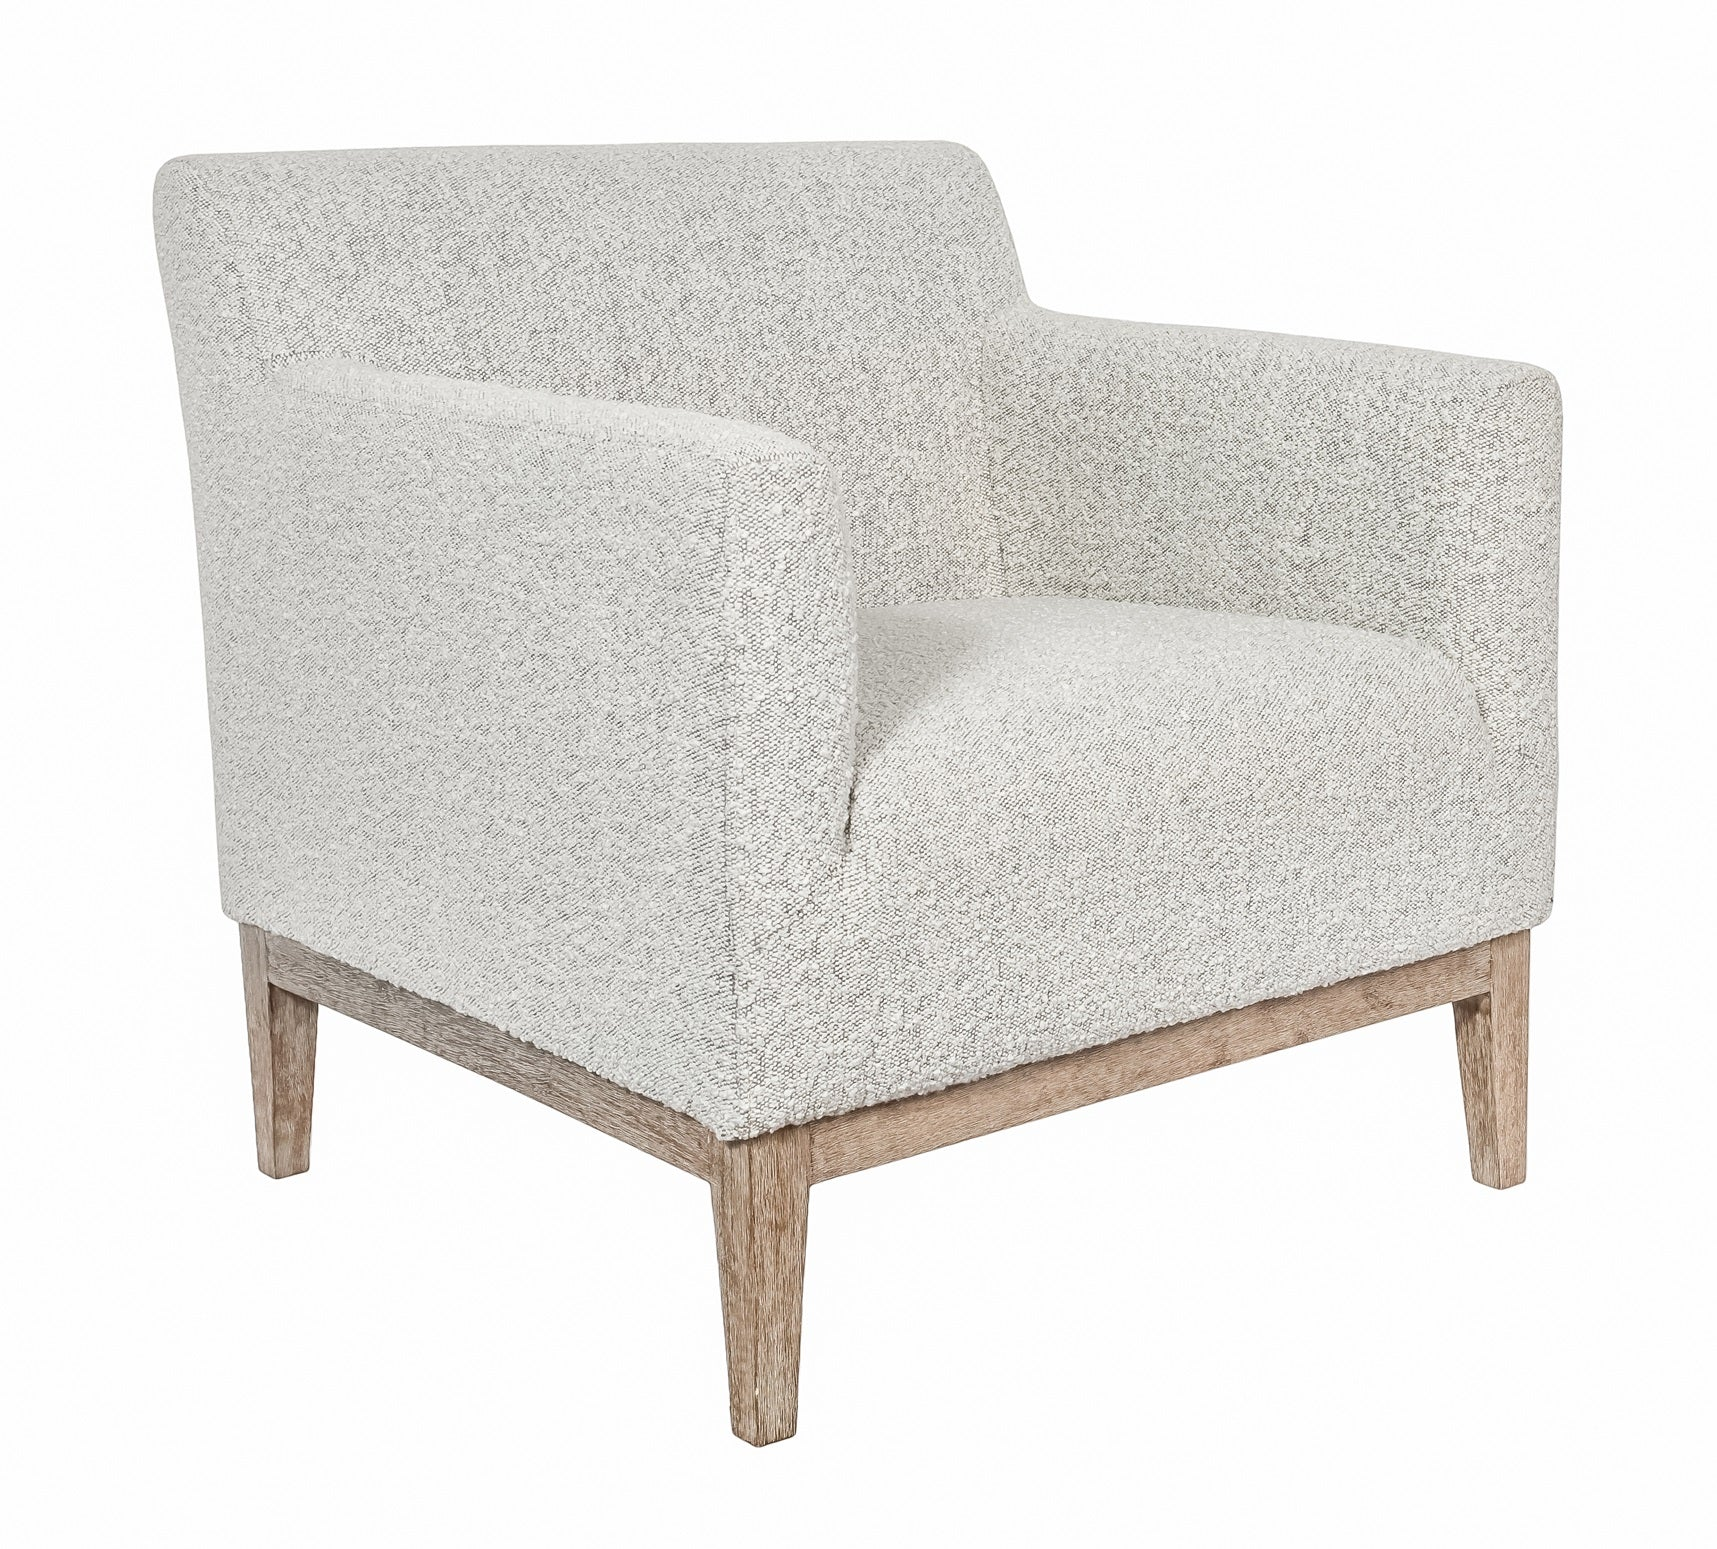 Ezra Chair - Grey Boucle